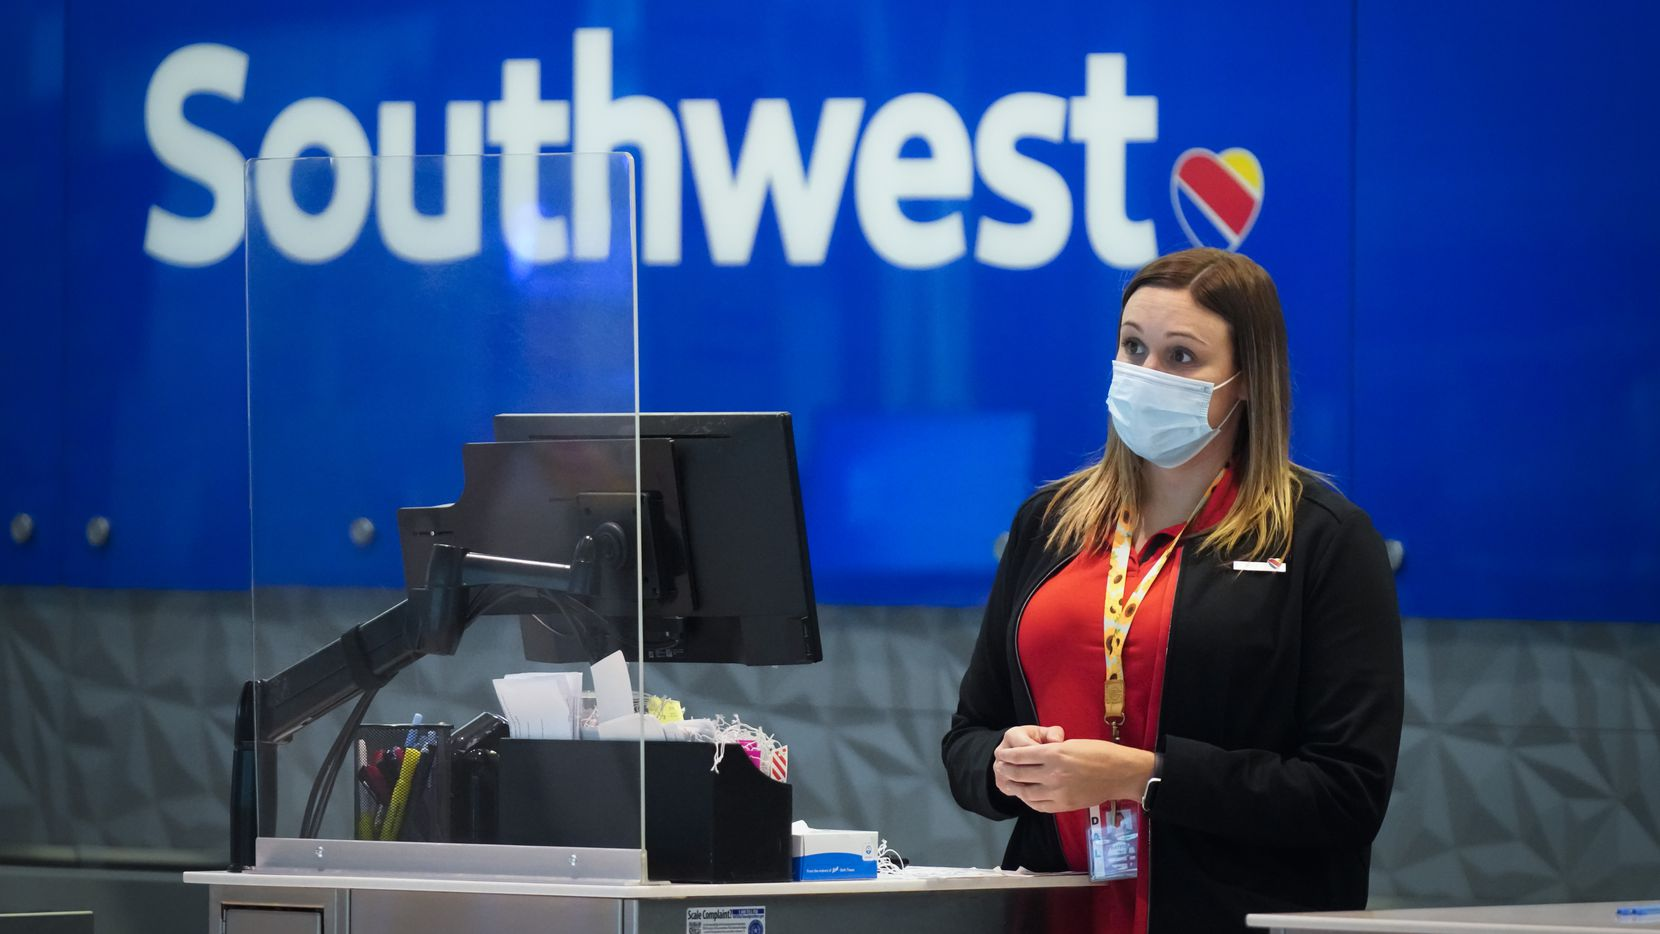 Southwest Airlines Workers